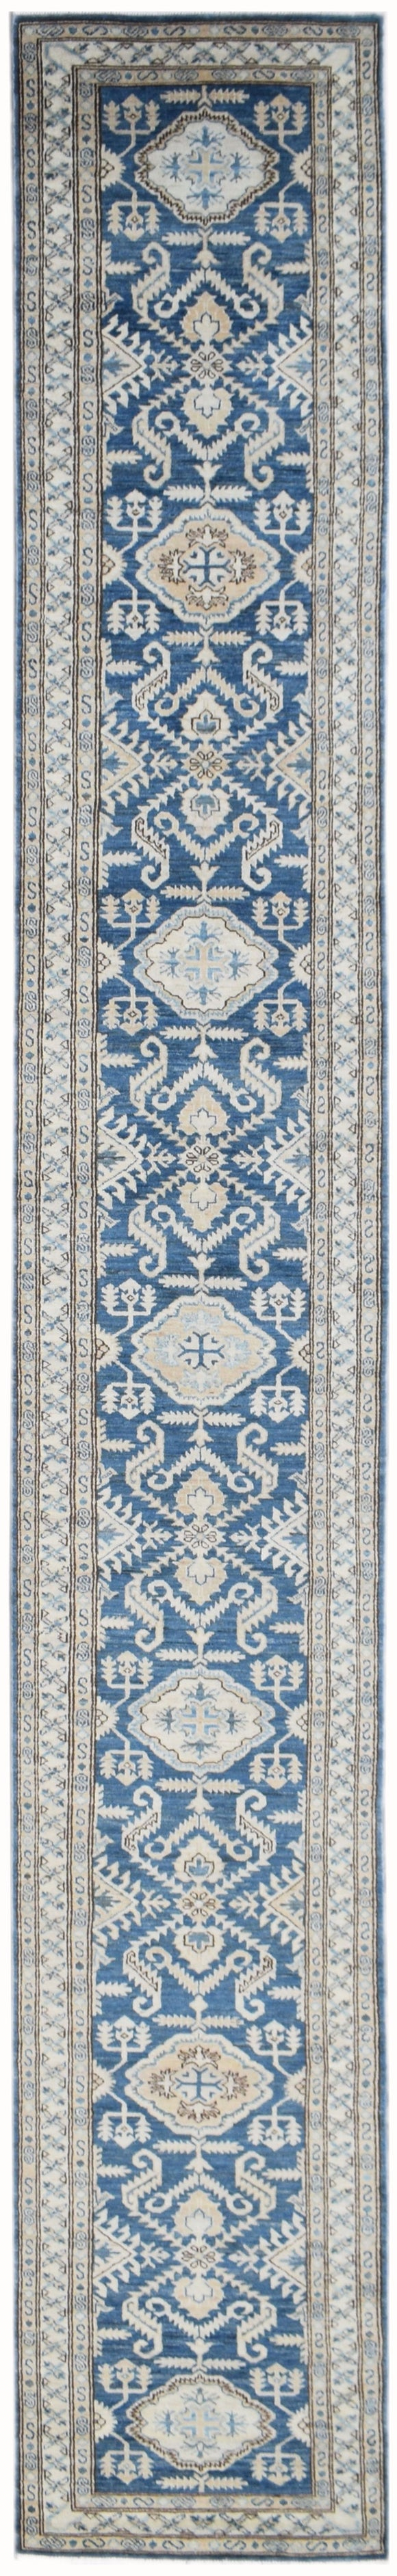 Handmade Super Sultan Collection Hallway Runner | 528 x 74 cm | 17'4